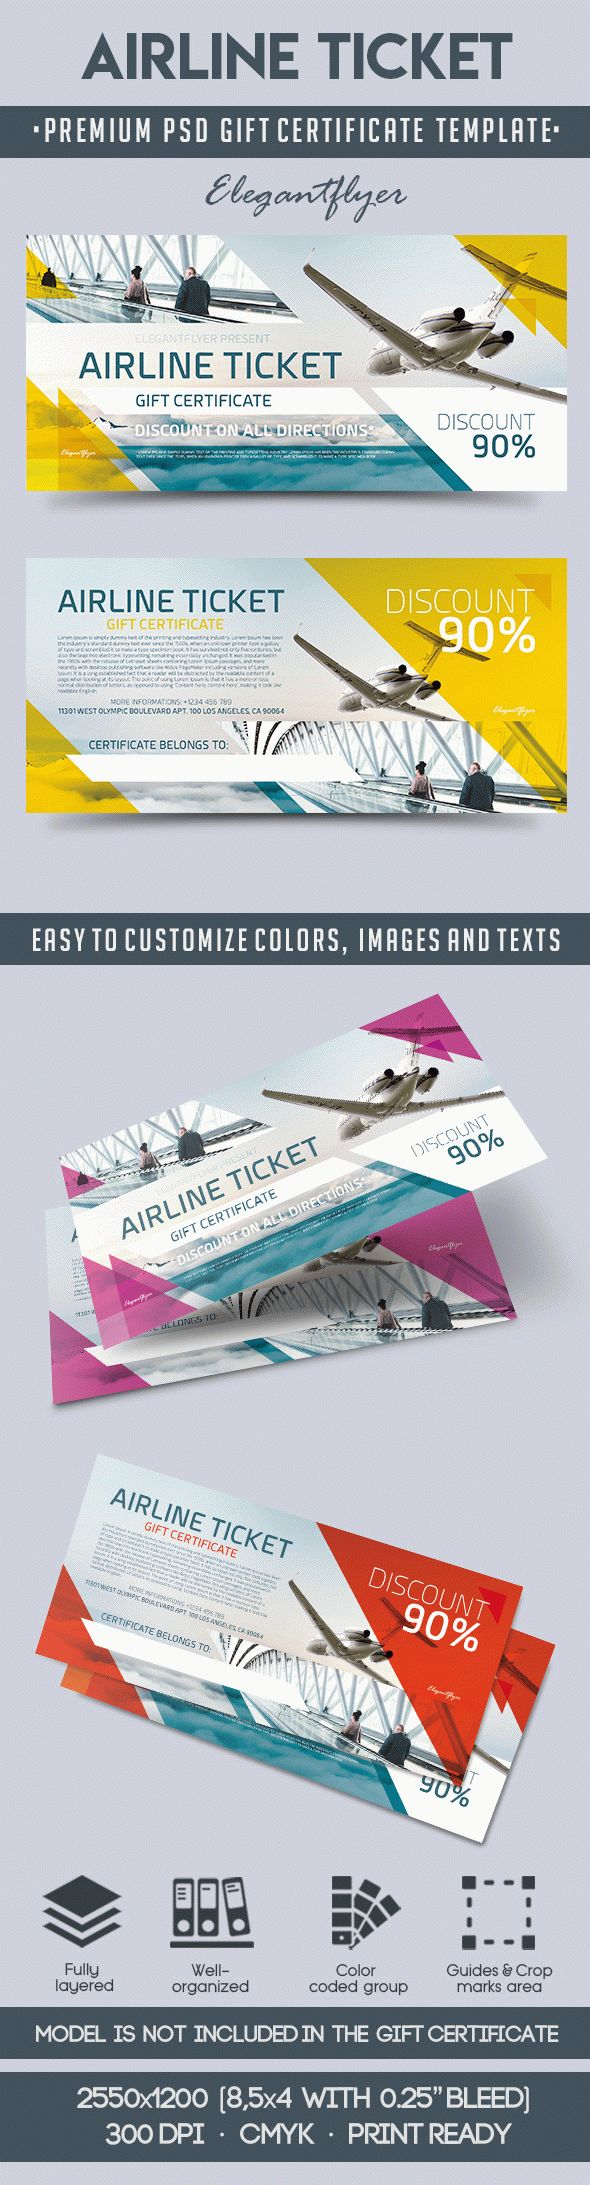 Gift Certificate for Airline Ticket